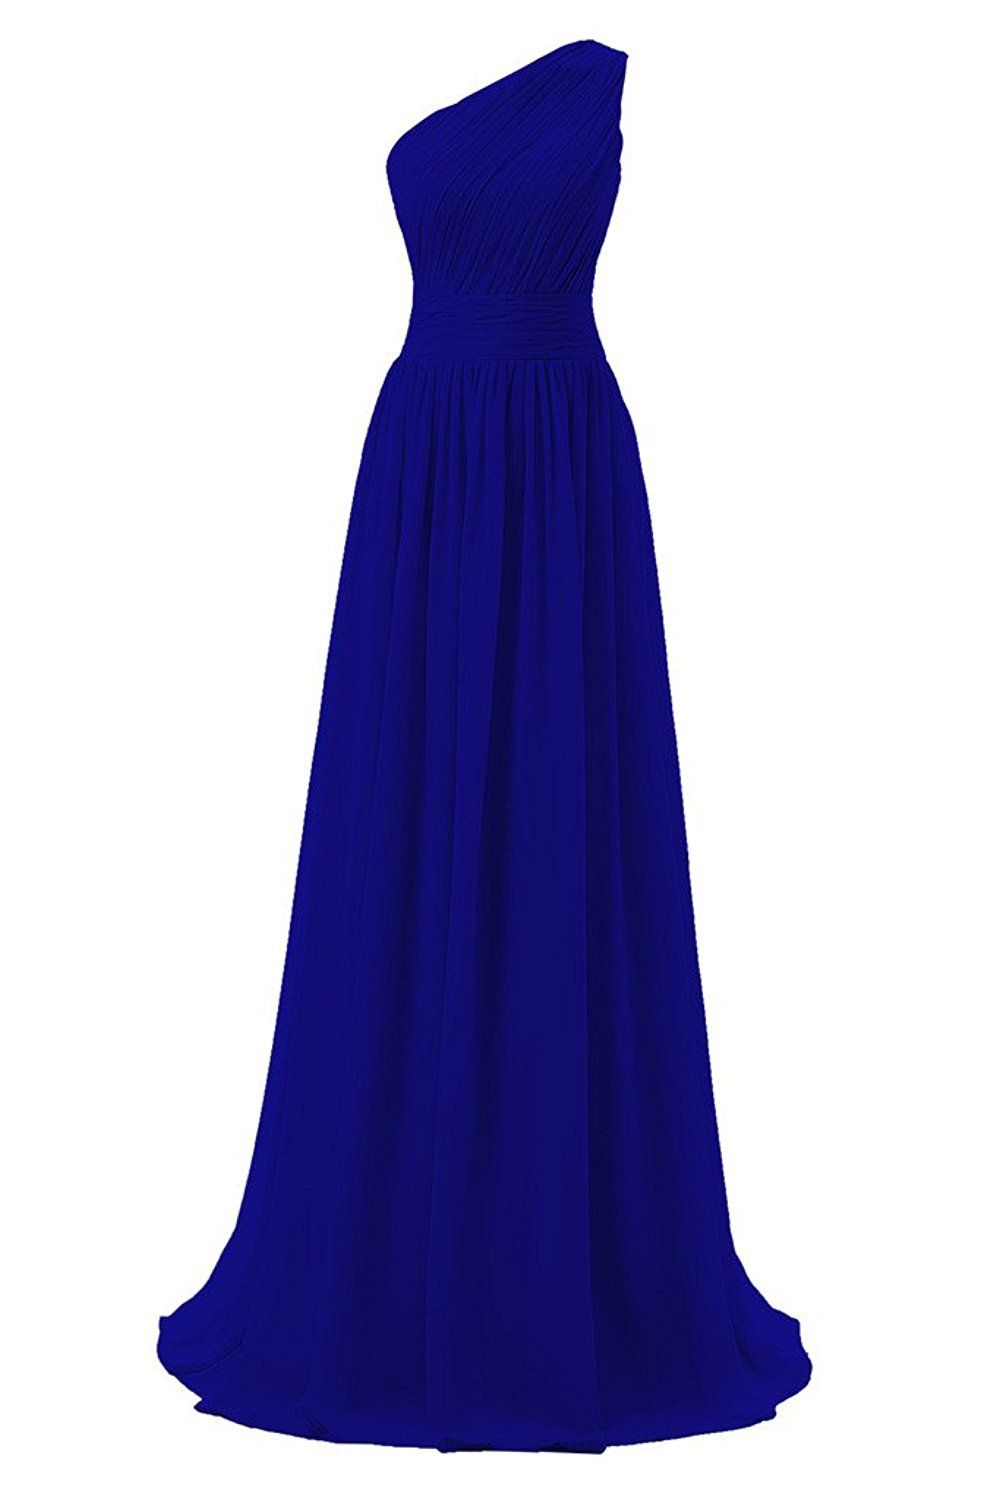 Dressever Women\'s Long One Shoulder Bridesmaid Asymmetric Prom ...